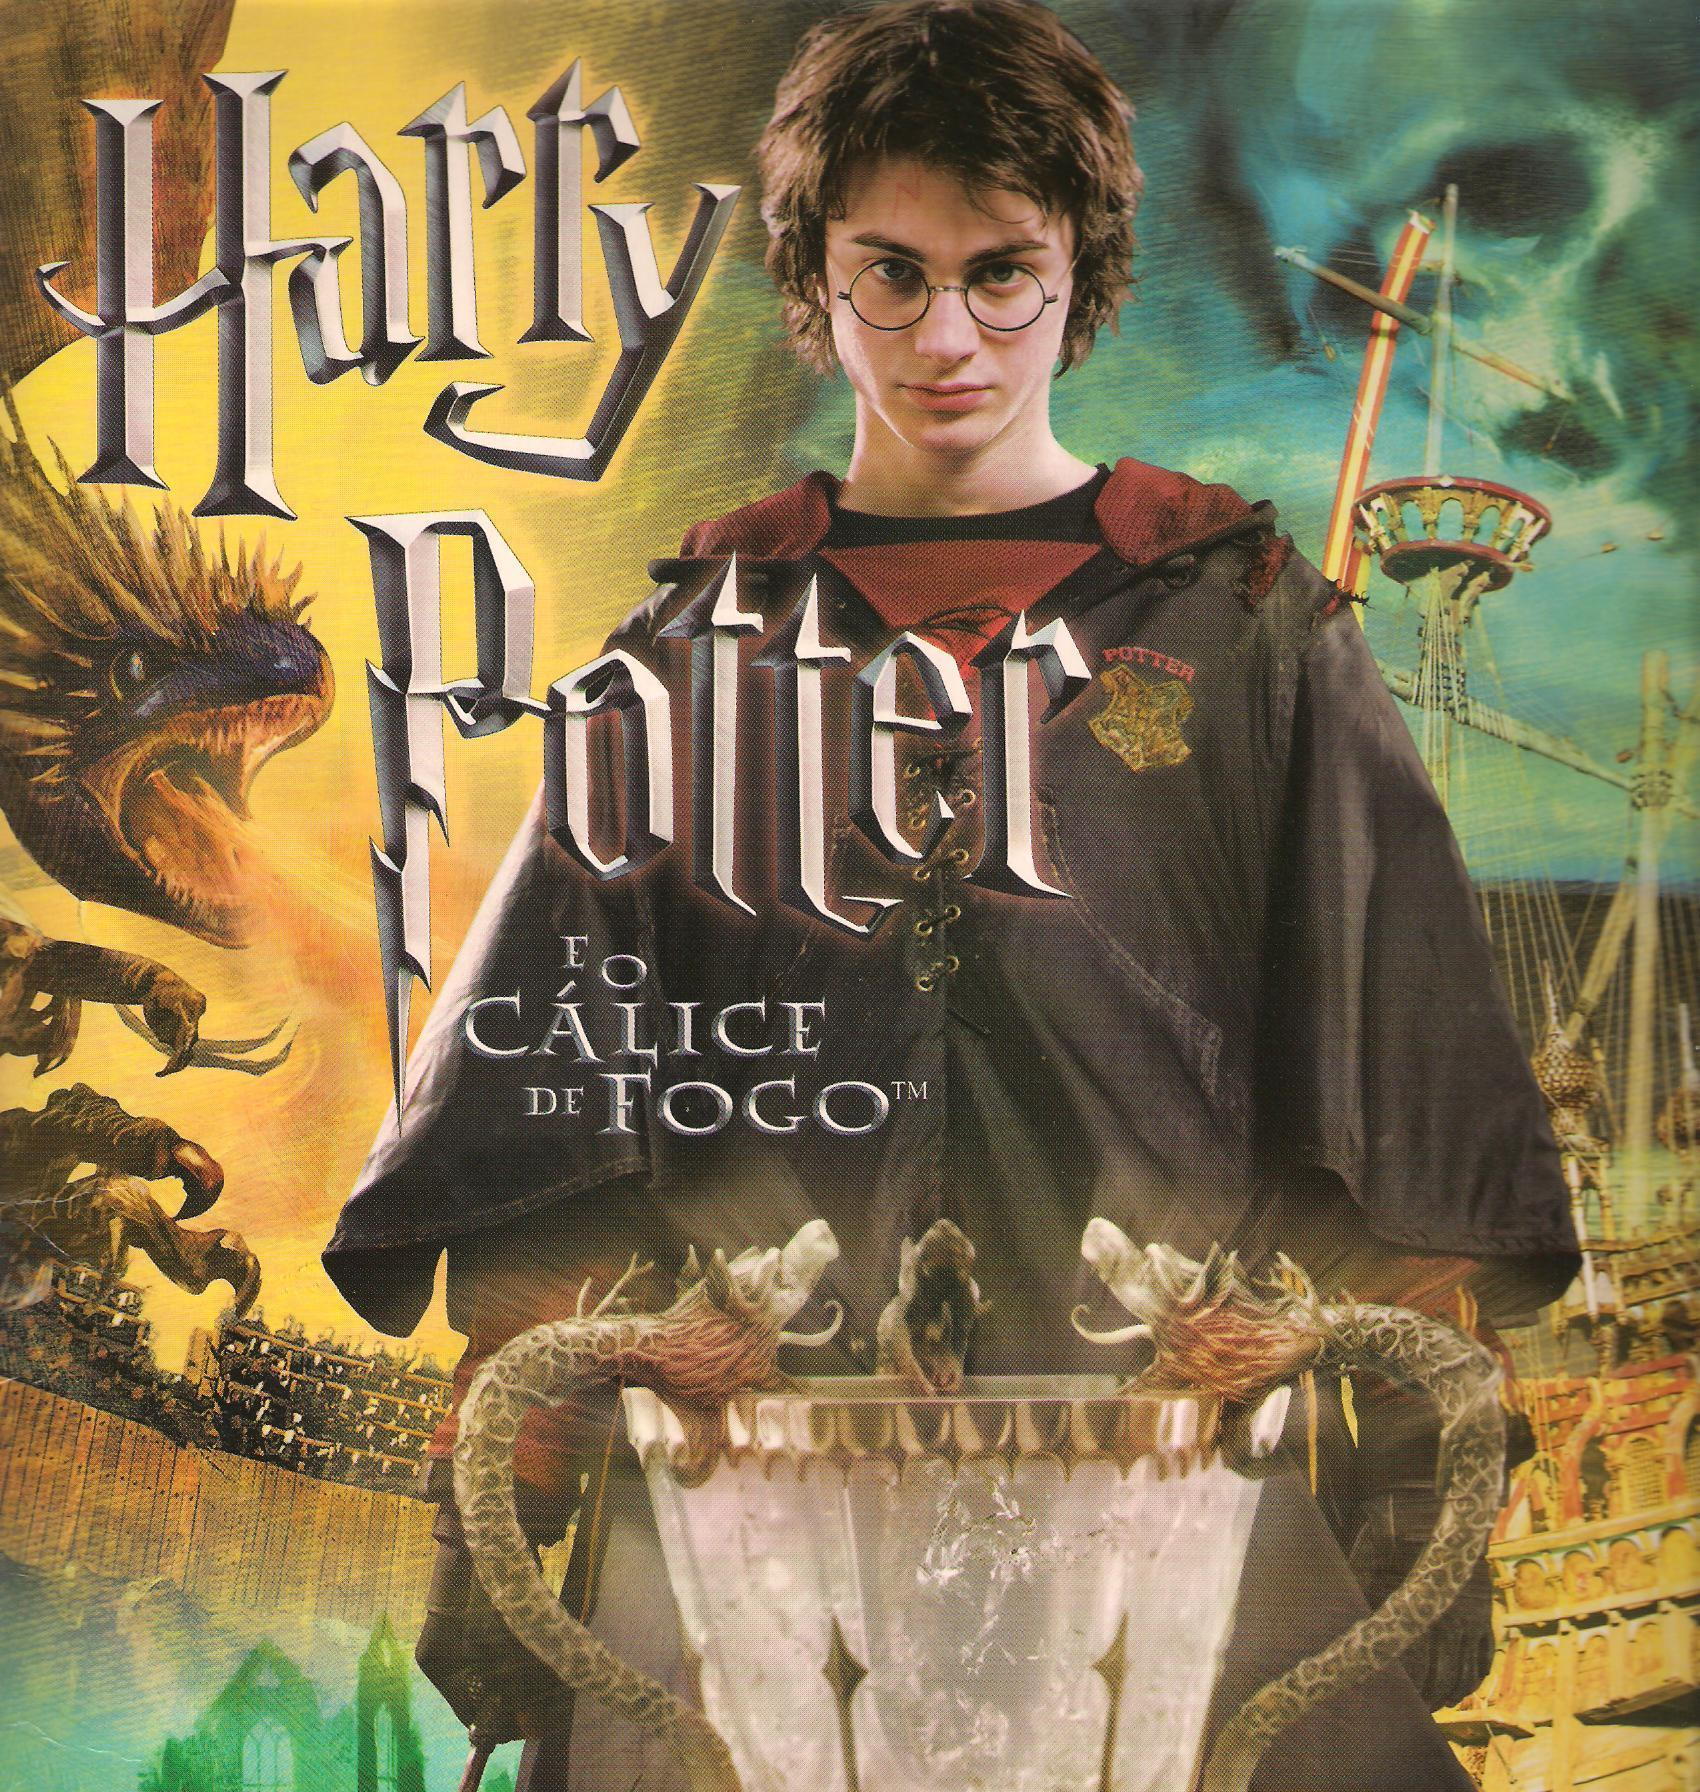 harry potter and the goblet of Harry starts his fourth year at hogwarts, competes in the treacherous triwizard tournament and faces the evil lord voldemort ron and hermione help harry manage the pressure – but voldemort lurks.